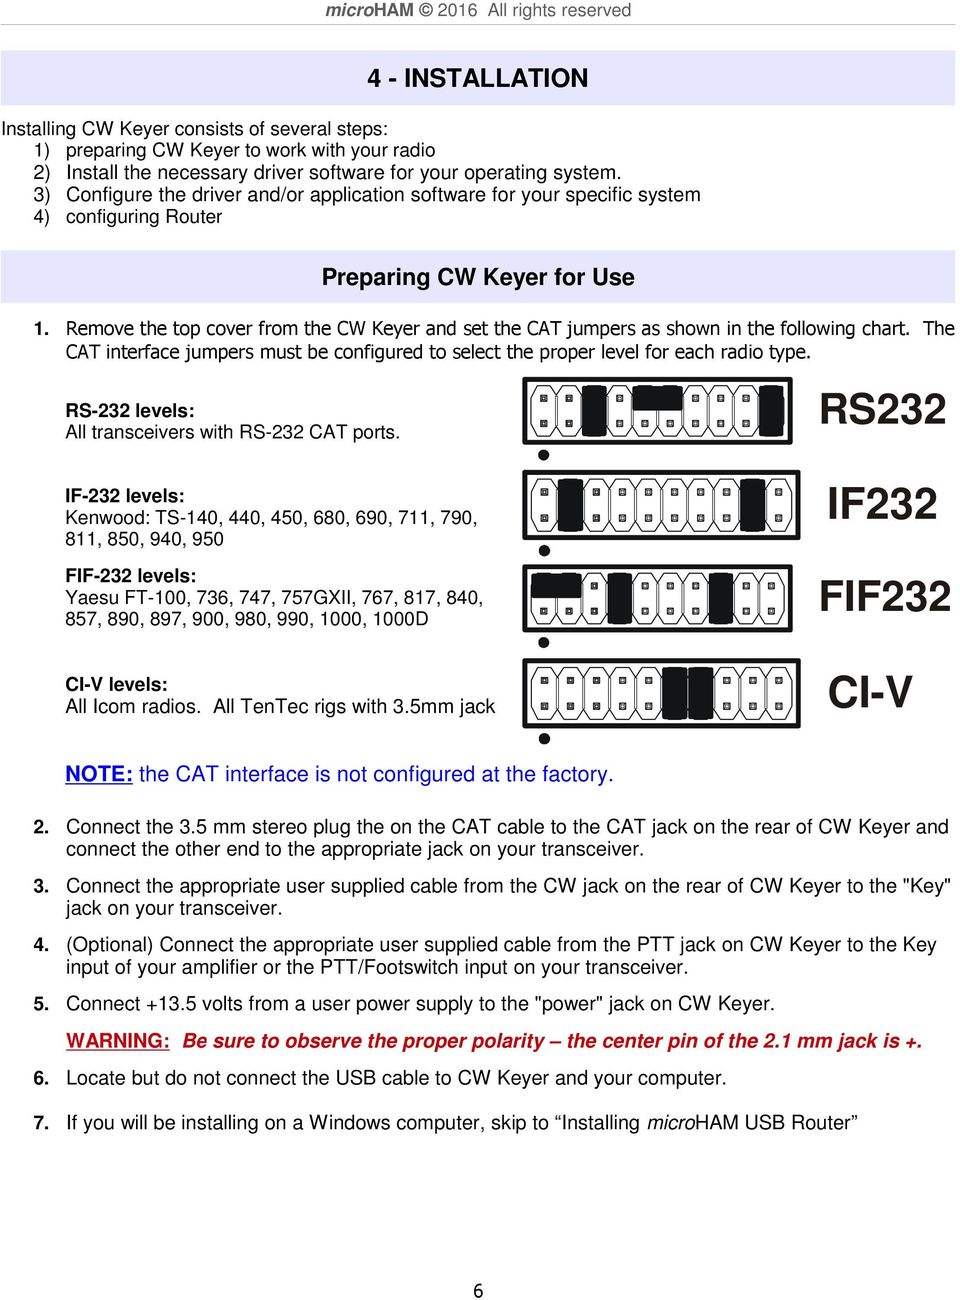 Microham 2016 All Rights Reserved Cw Keyer Fax Homepage Pdf 790 Kenwood Radio Wiring Diagram Remove The Top Cover From And Set Cat Jumpers As Shown In